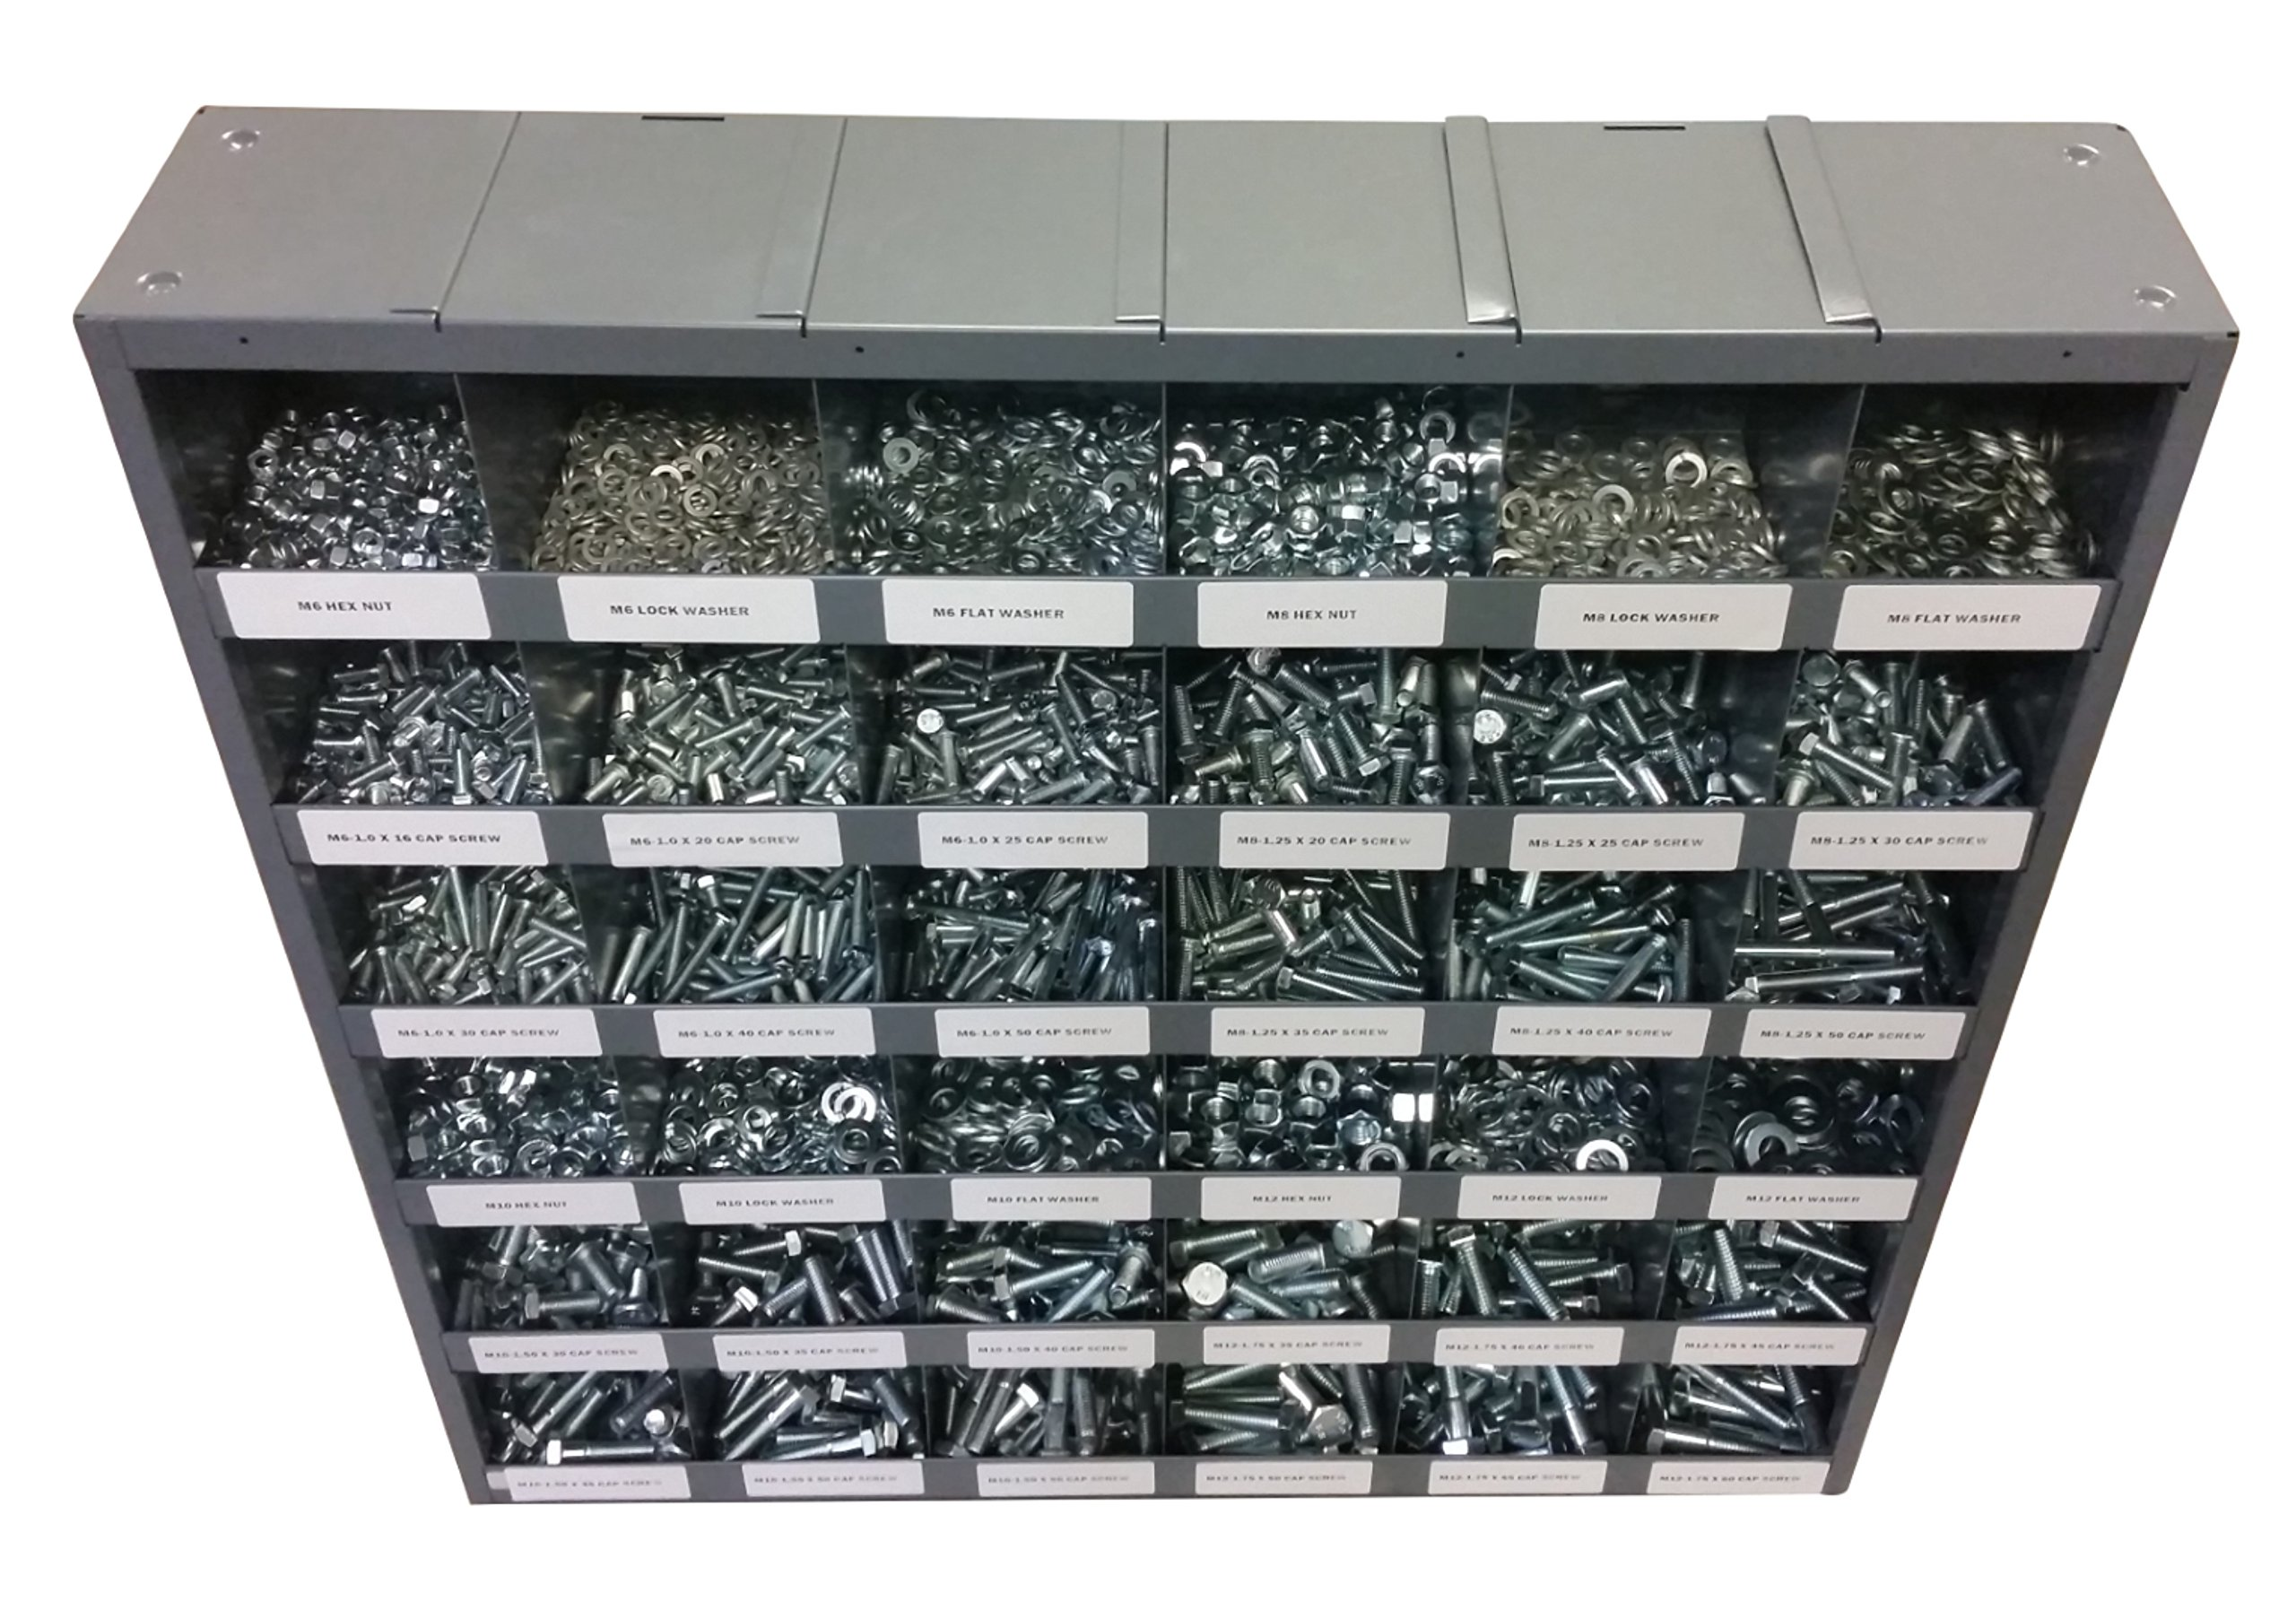 2830 Piece Metric Thread Bolt (Hex Head Cap Screw), Nut, and Washer Assortment with 36 Hole Bin